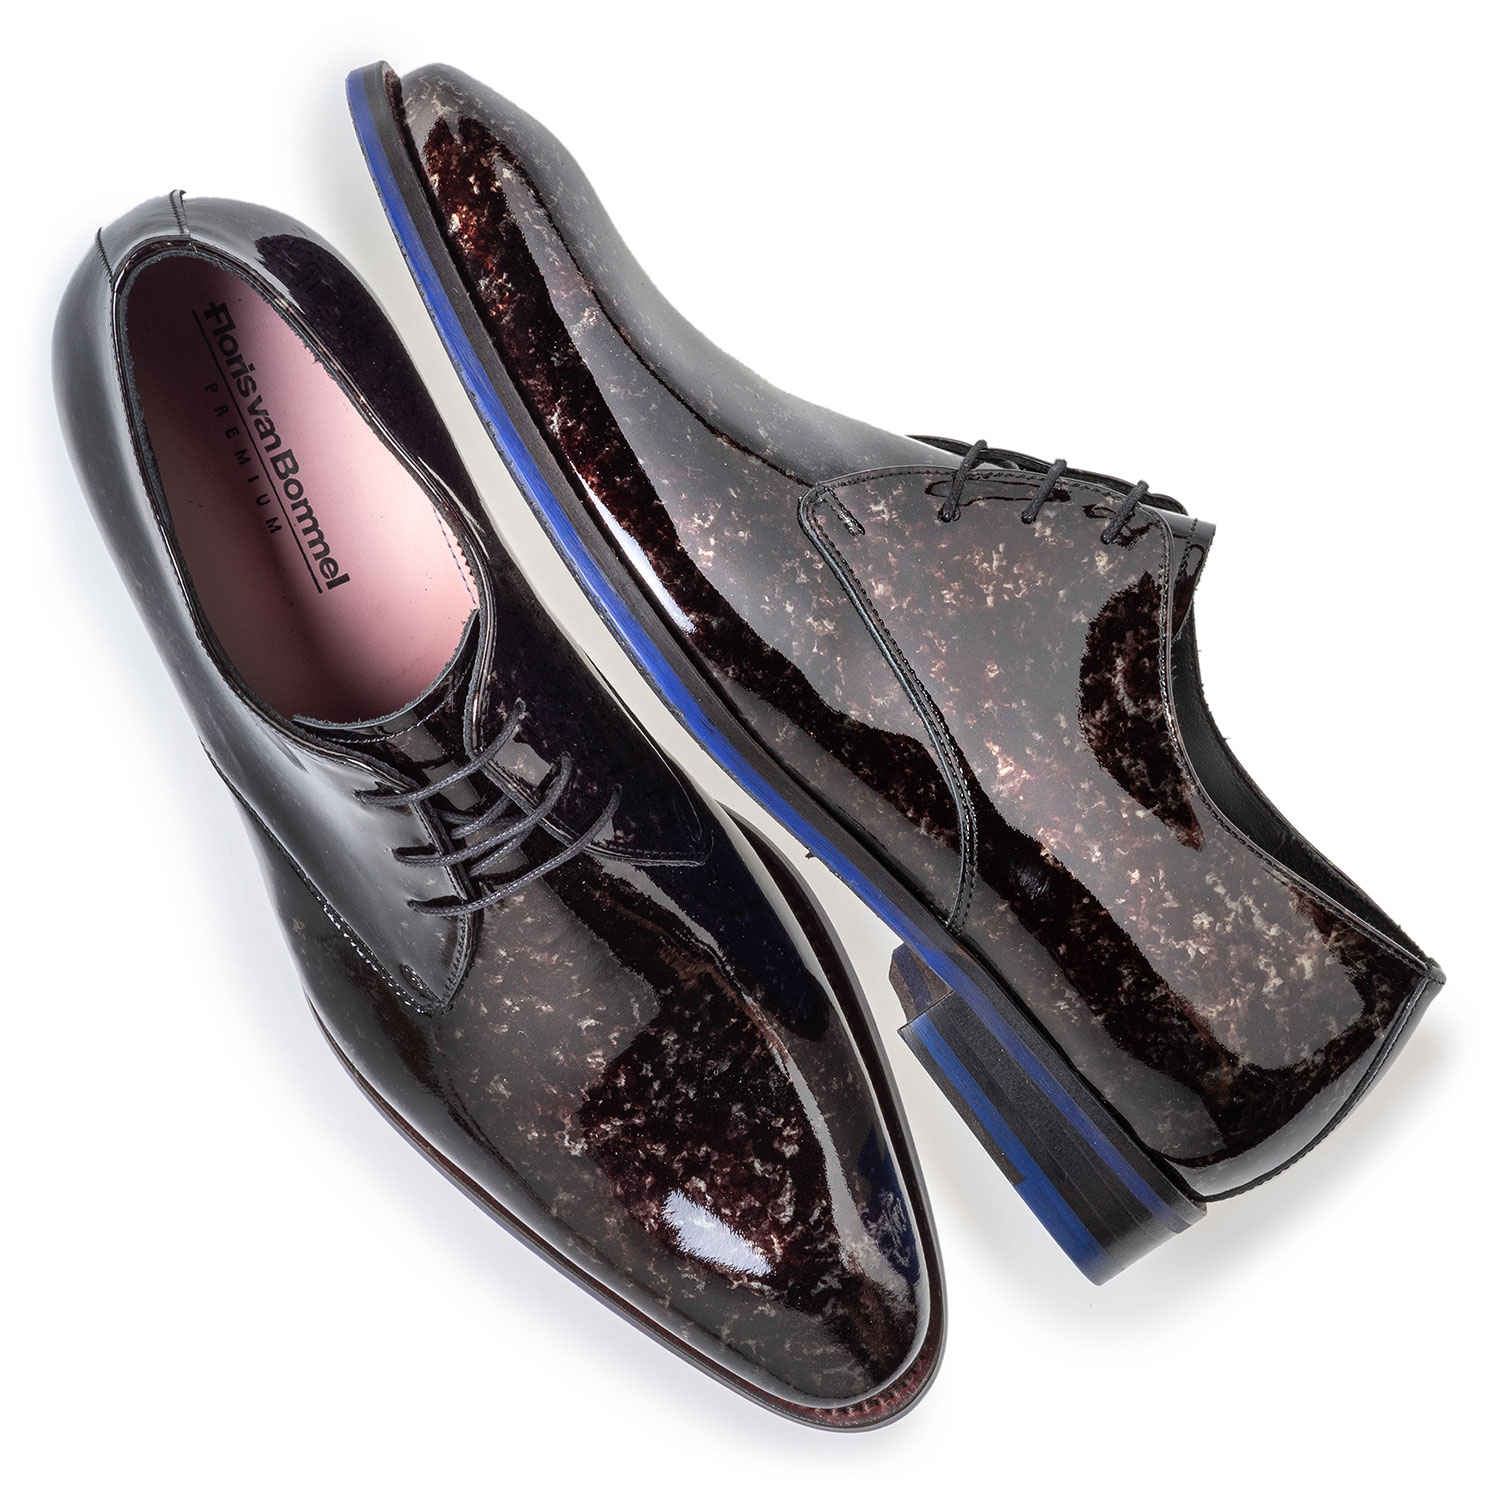 18224/04 - Lace shoe grey patent leather